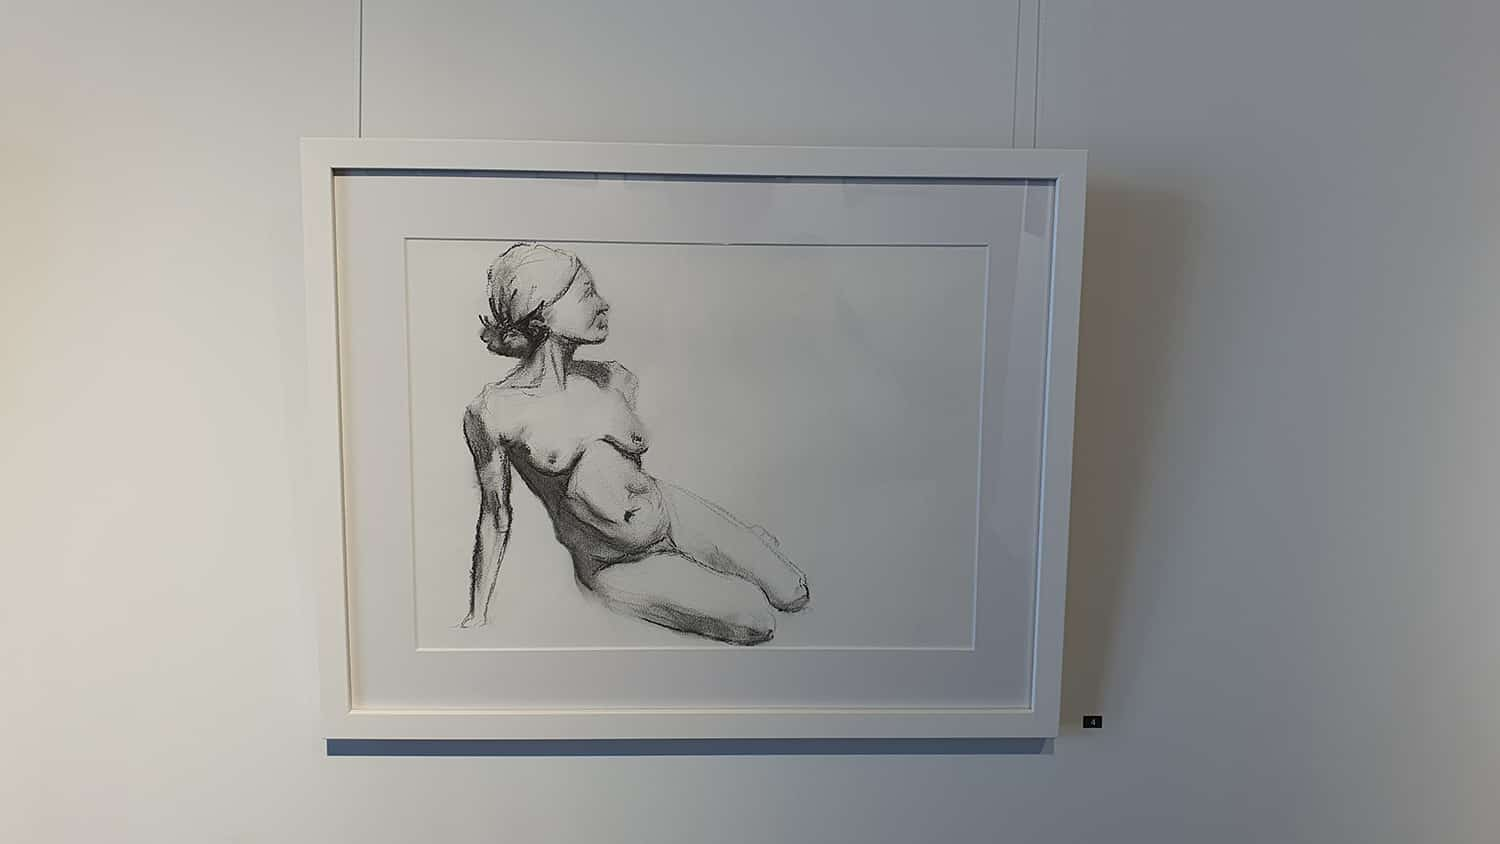 Peach Black Chippendale Gallery Life Drawing Club Exhibition November 2020 Sydney Art Out Live (14)